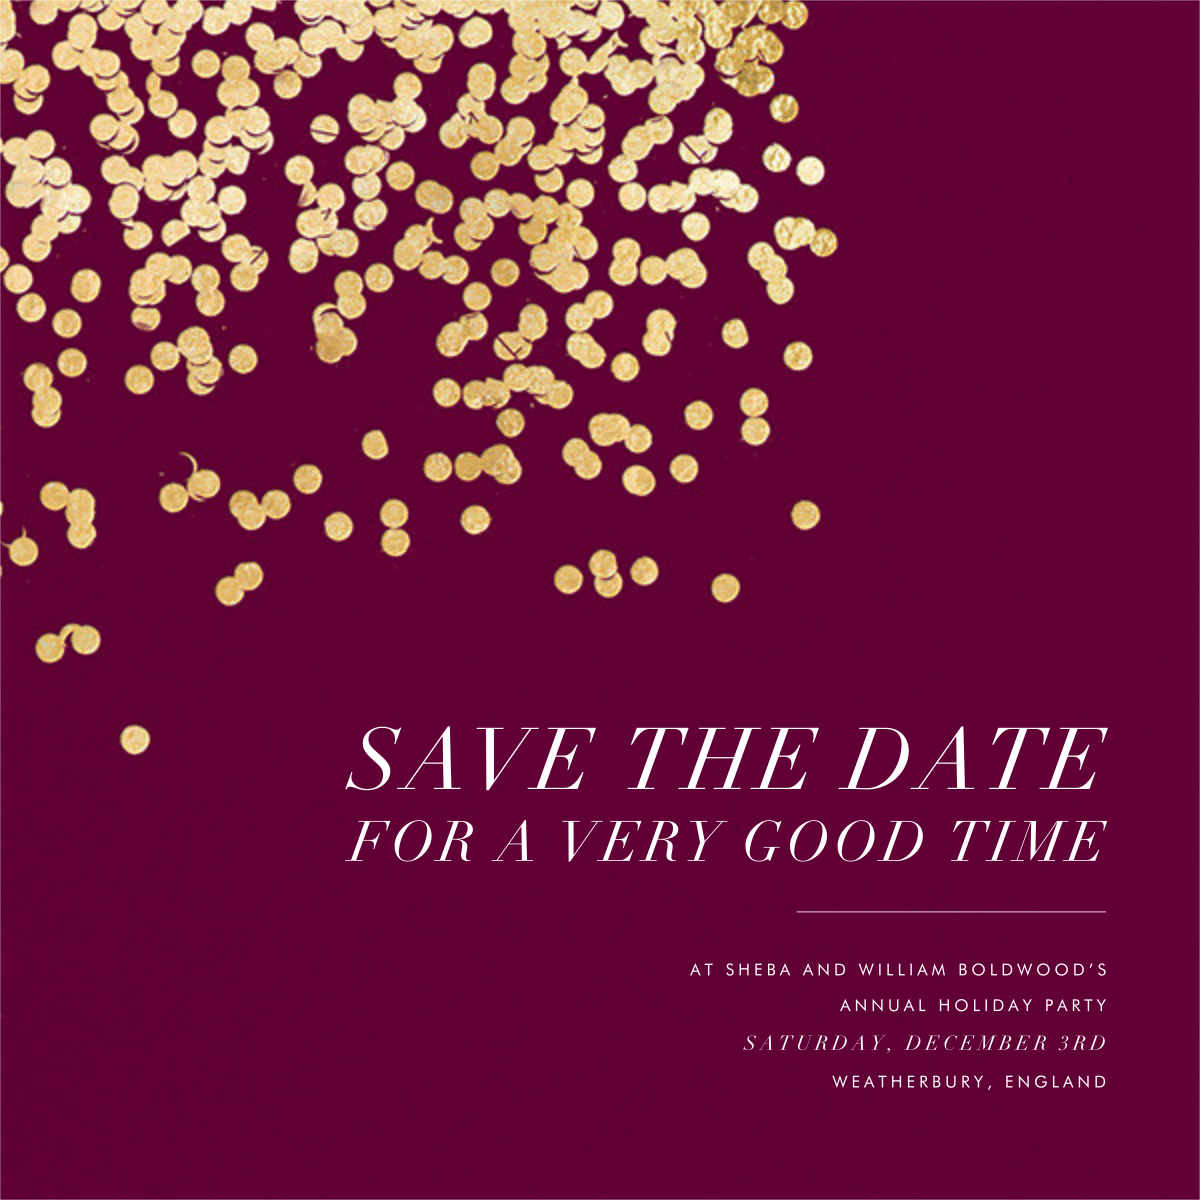 Bijou - Merlot - Kelly Wearstler - Holiday save the dates